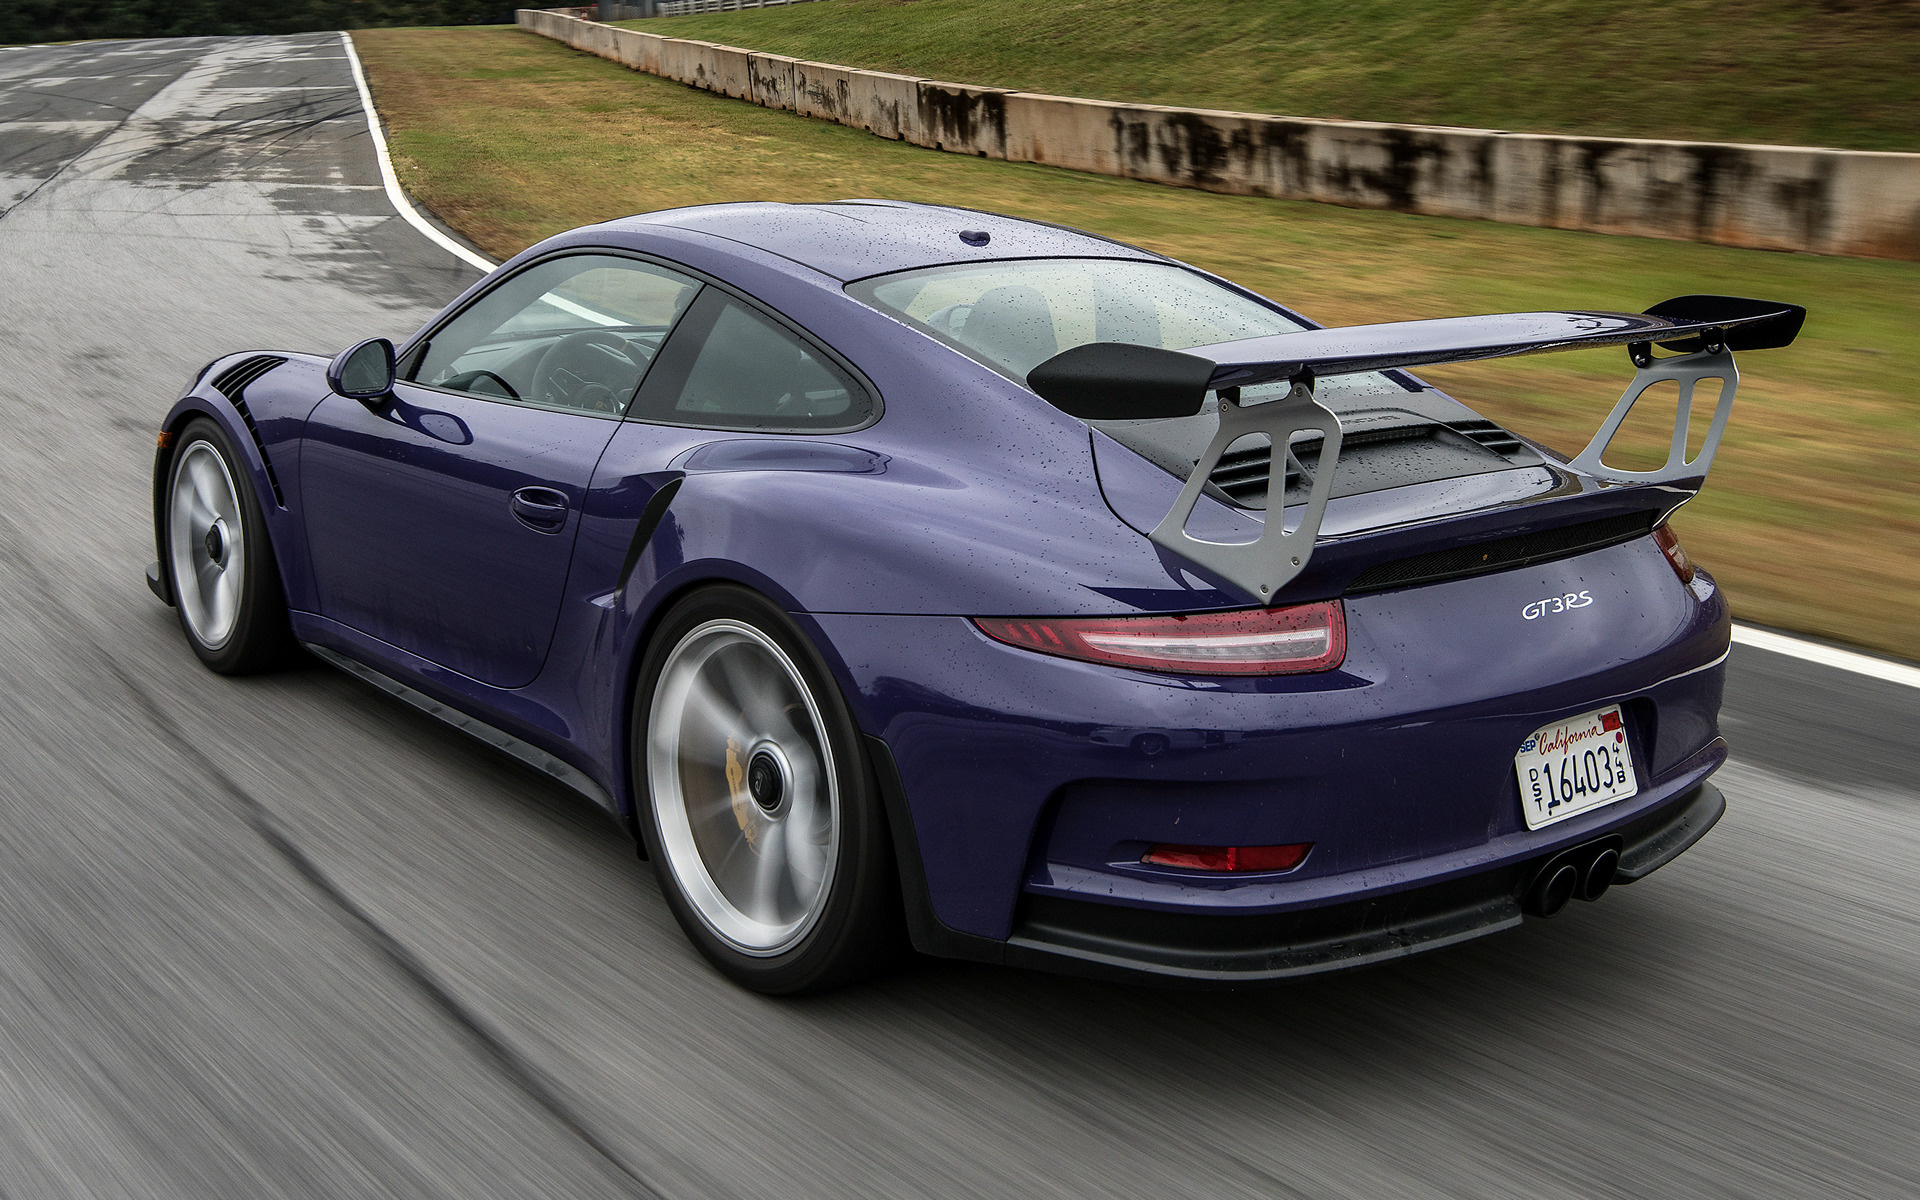 911 Carrera Gts >> 2016 Porsche 911 GT3 RS (US) - Wallpapers and HD Images ...